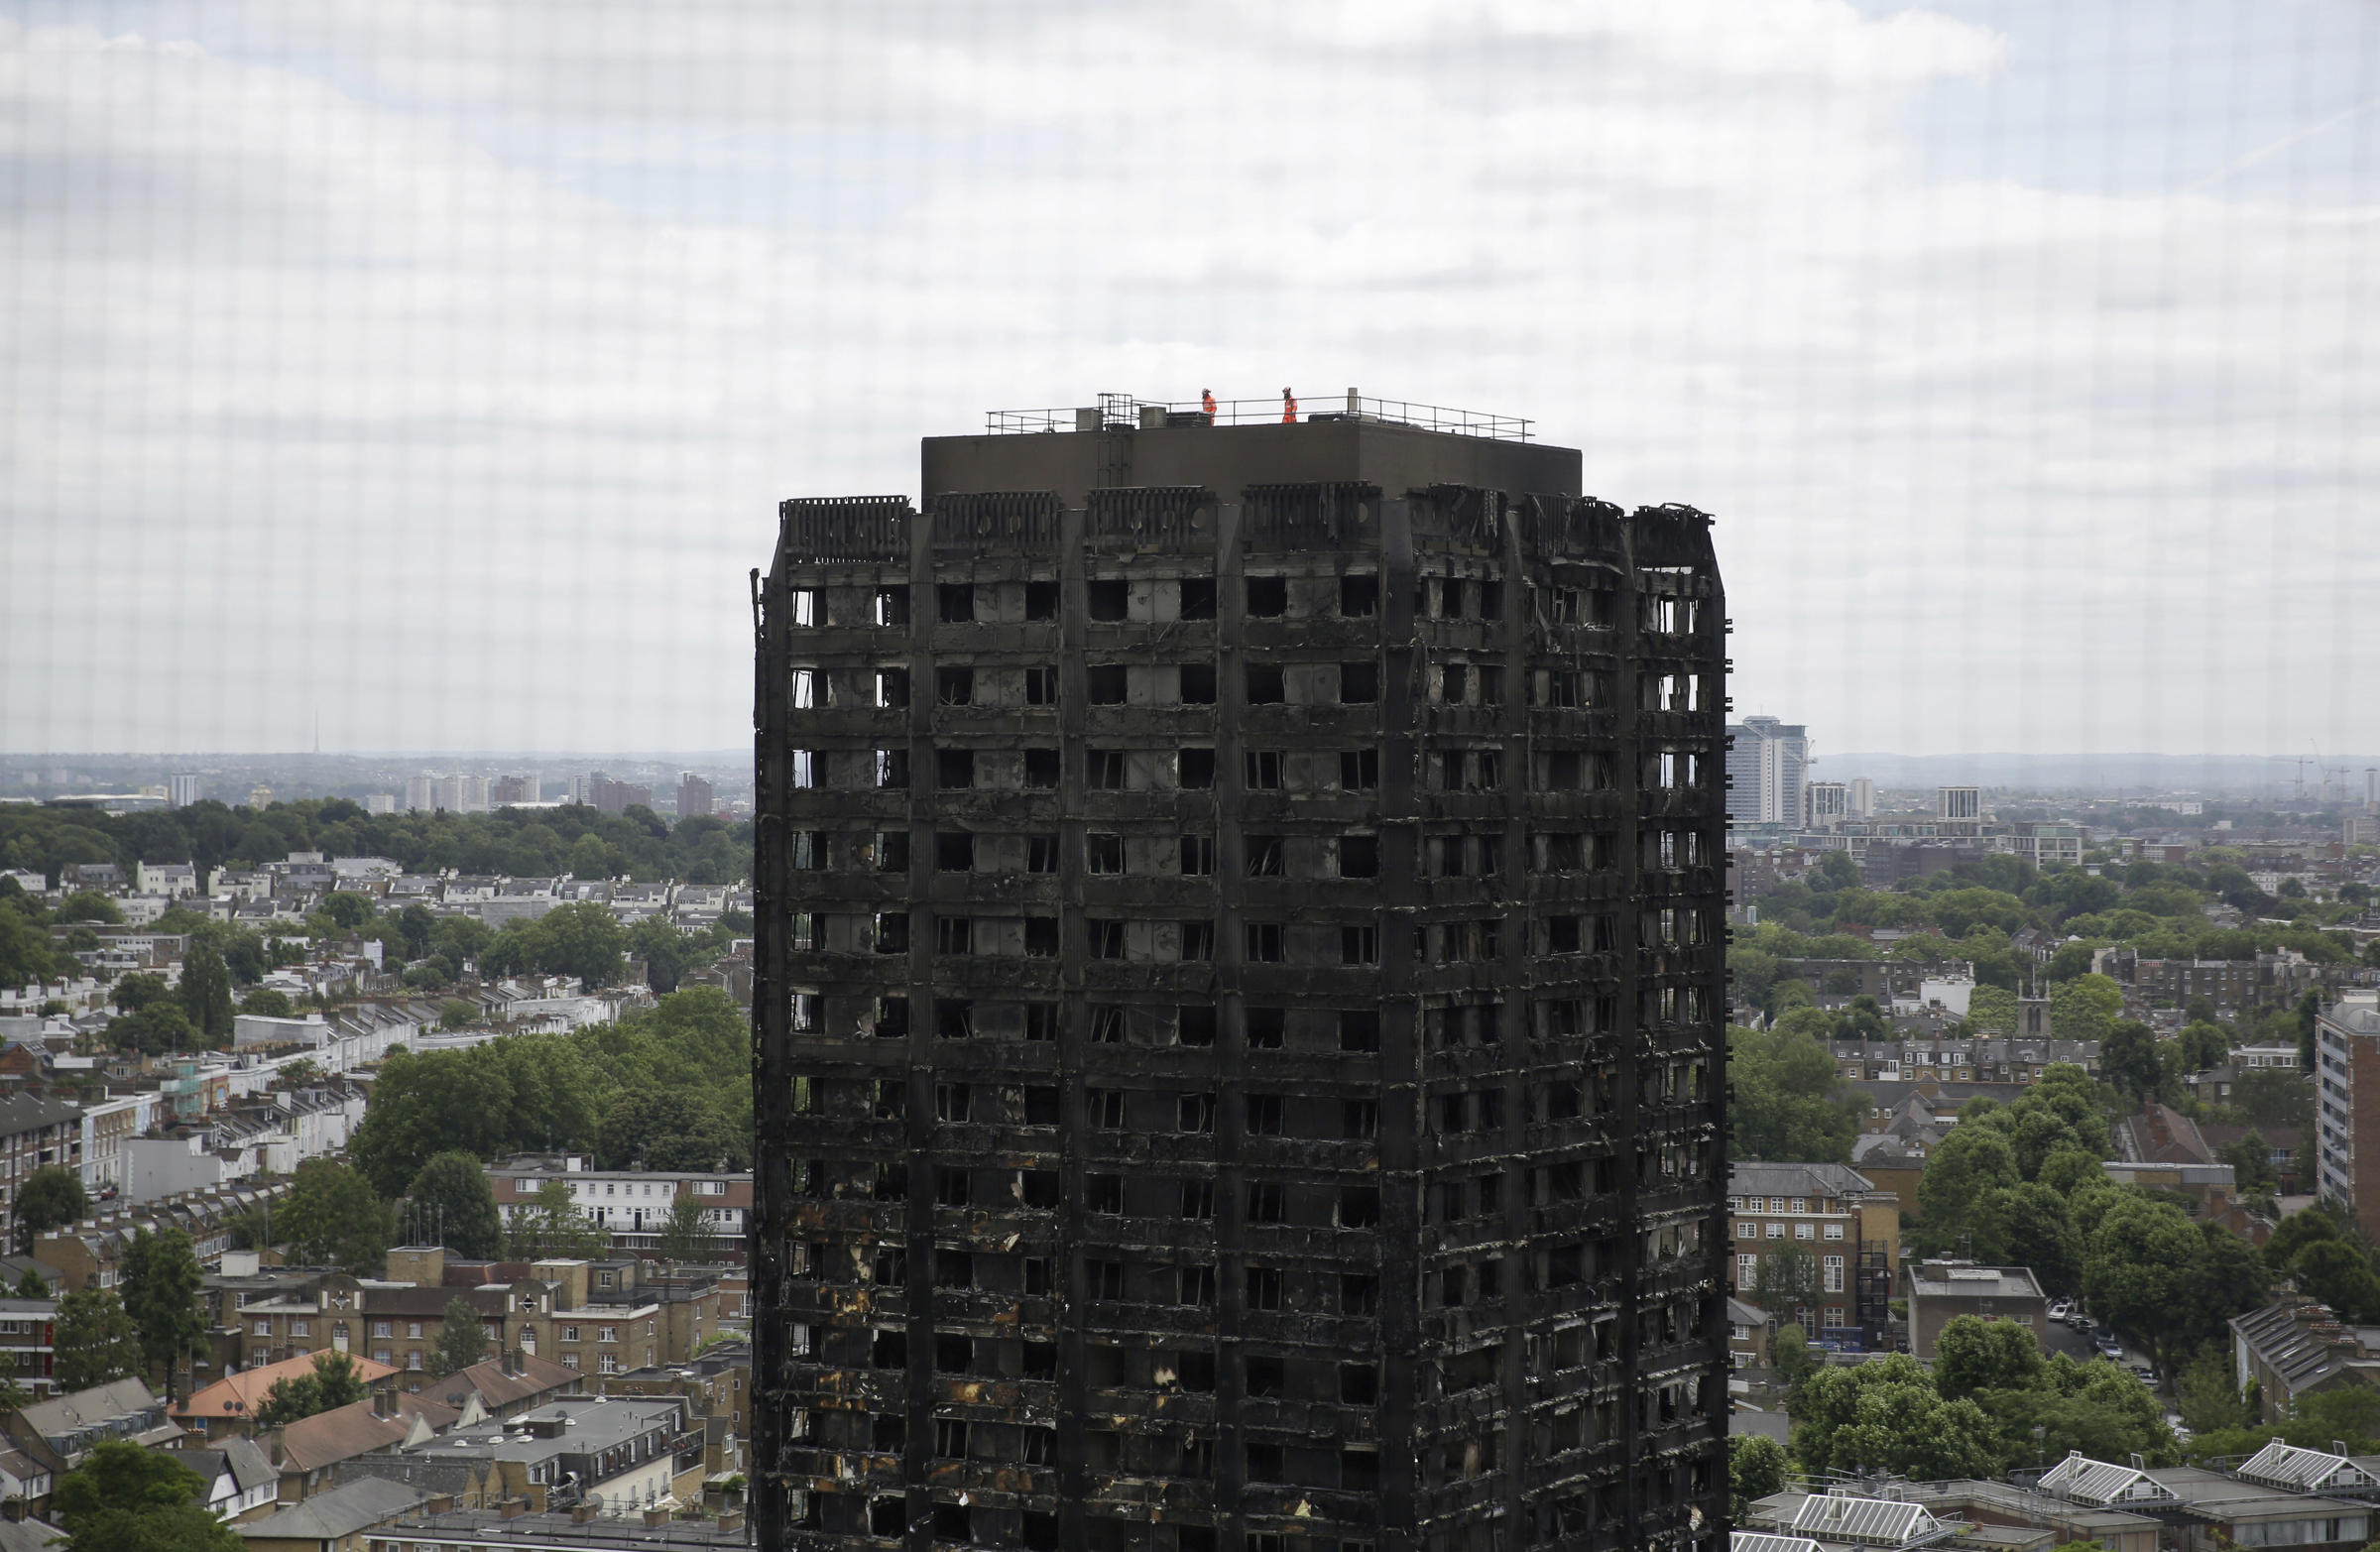 79 now believed to have died in London high-rise fire